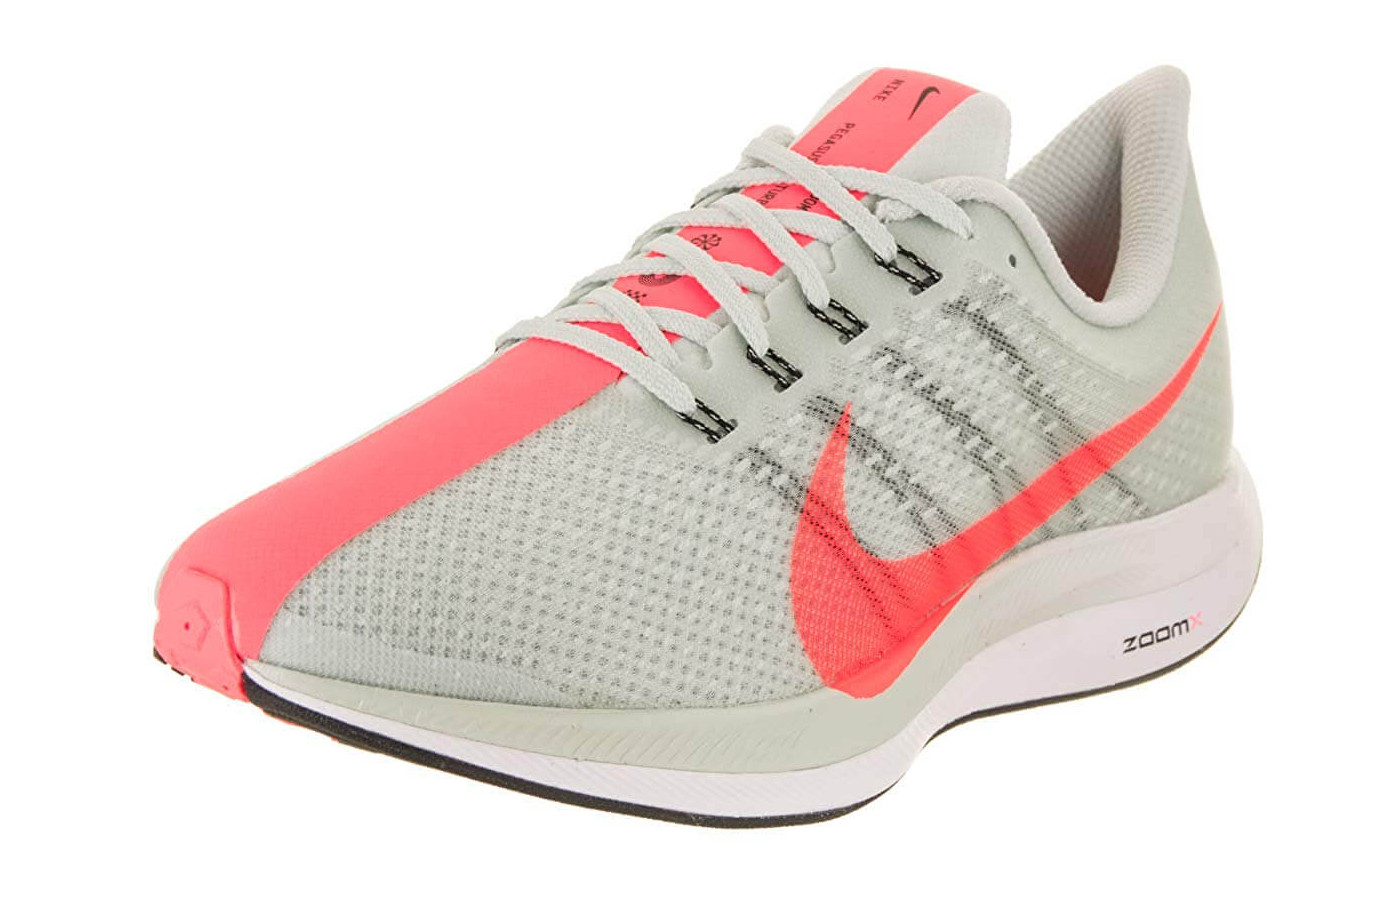 4c1c7f8d15c The Zoom Pegasus Turbo is available in several colorways for both men and  women.